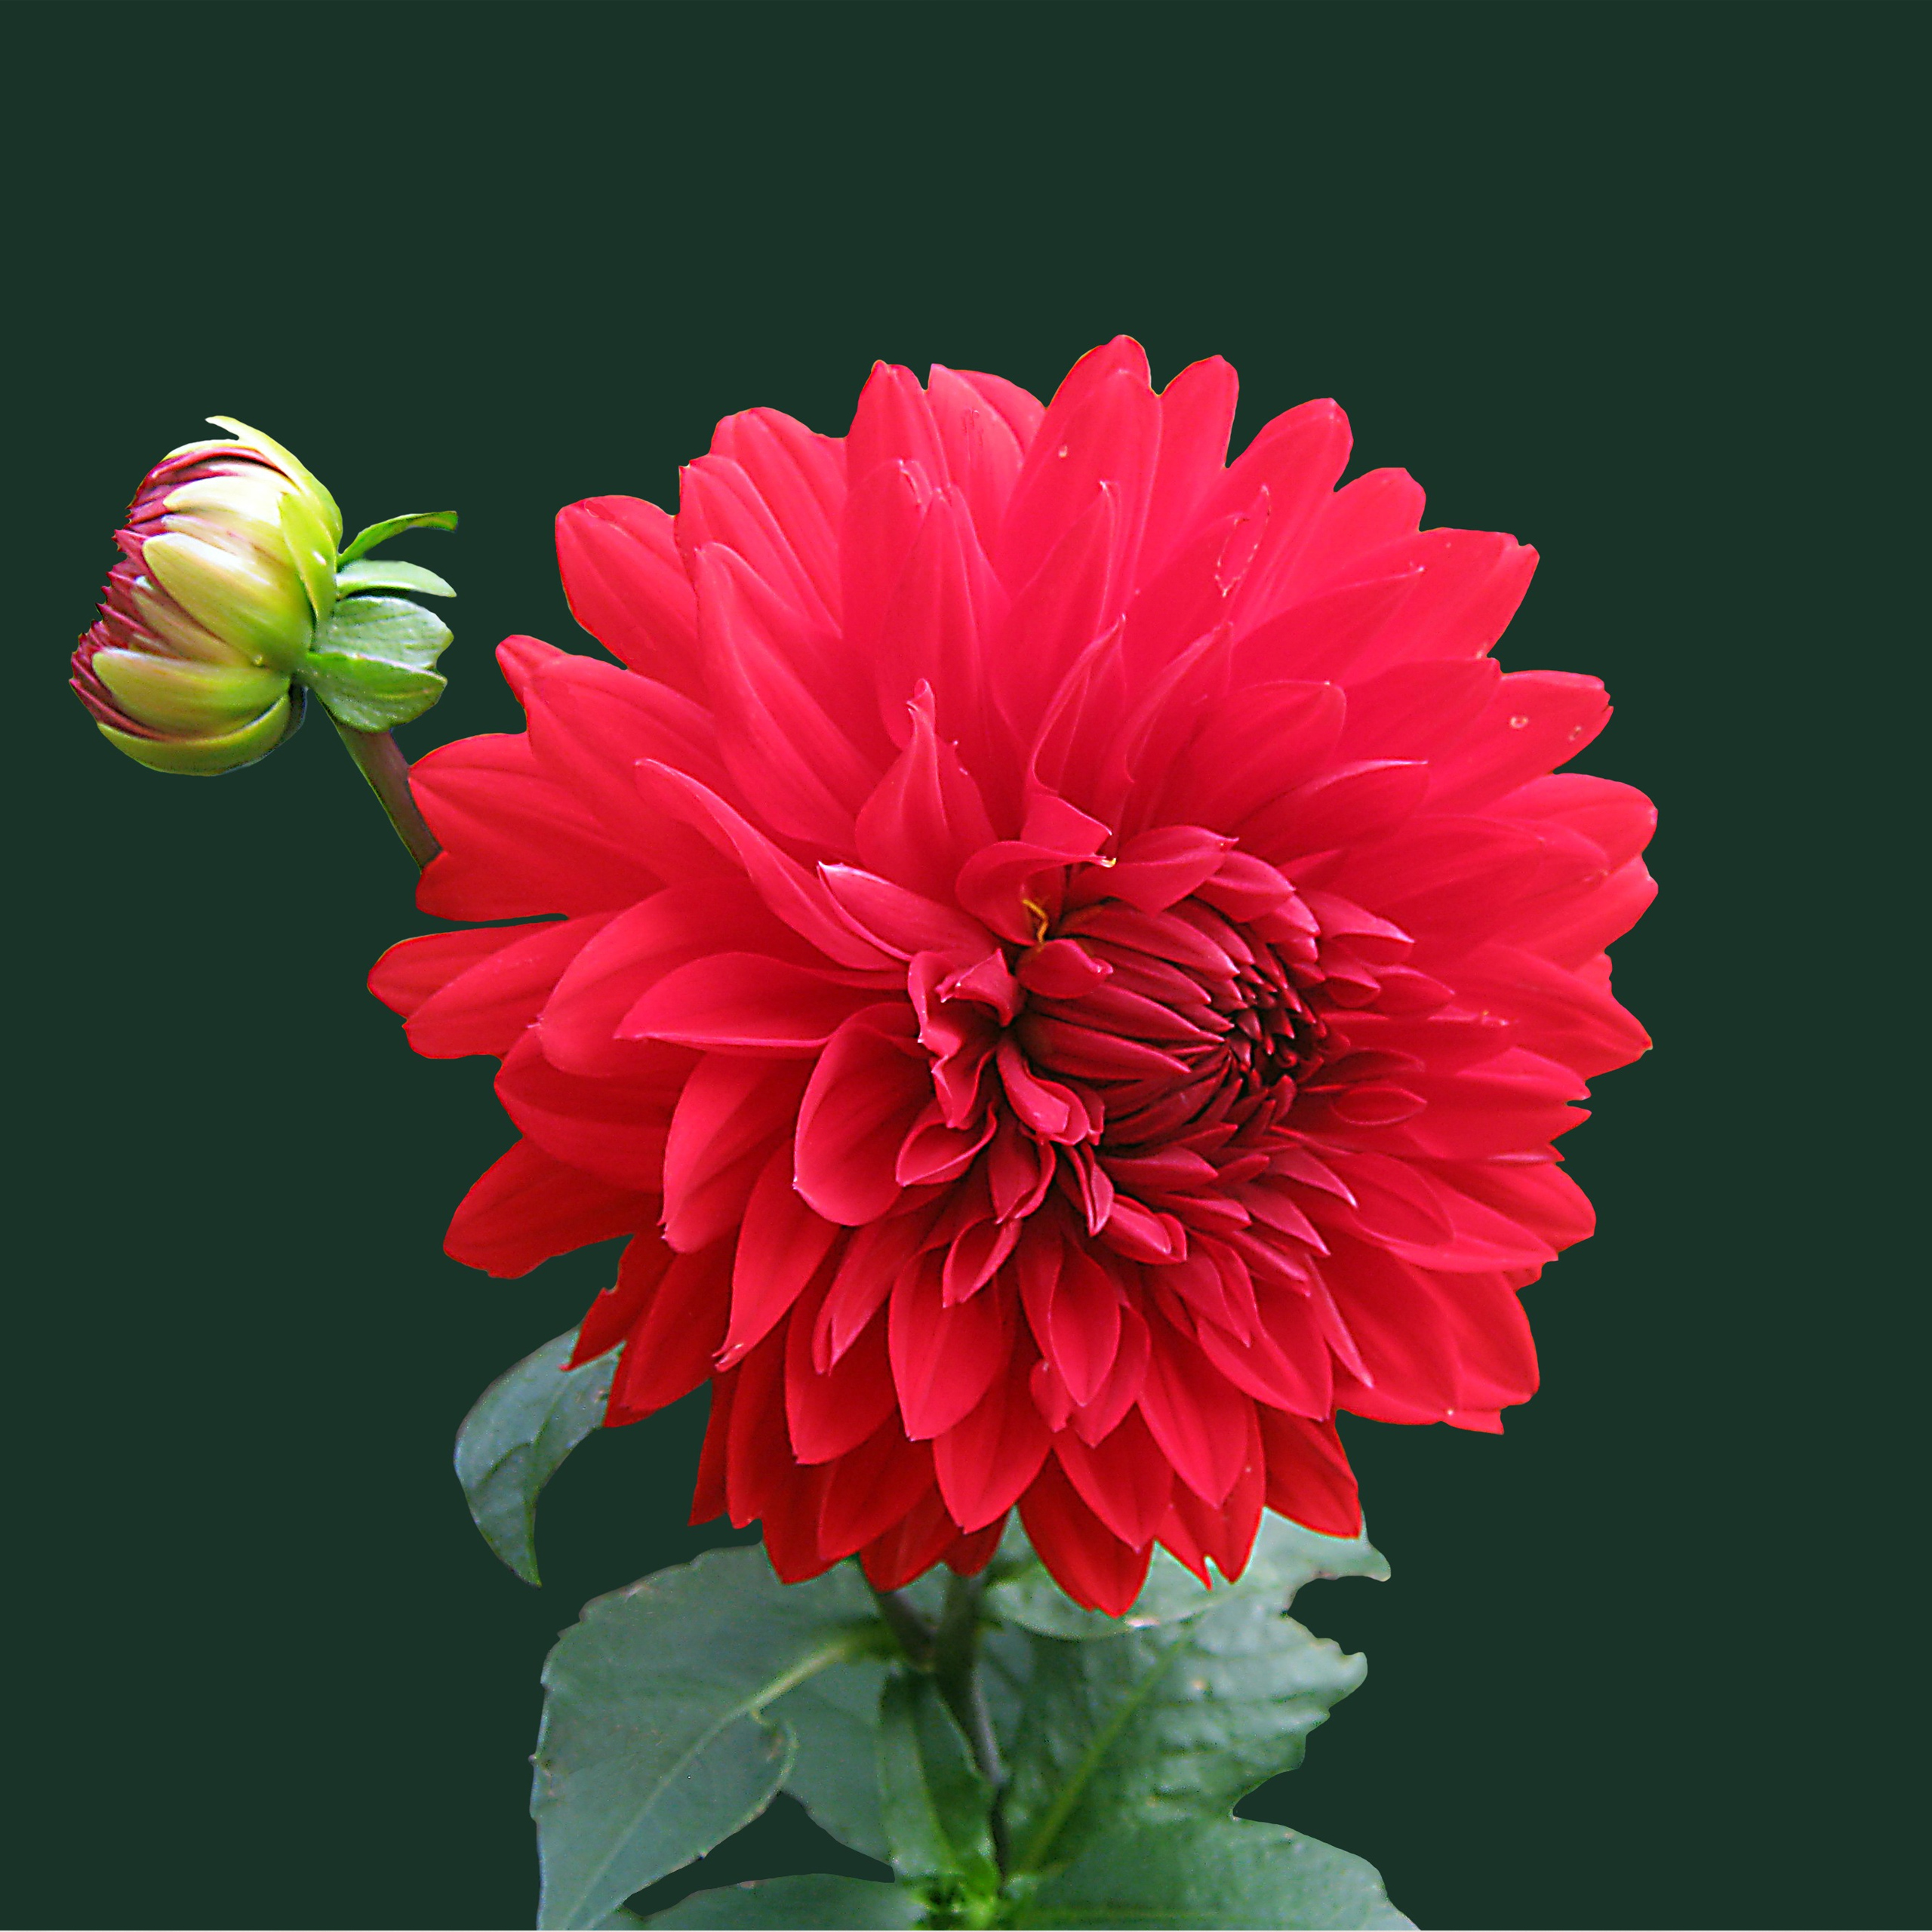 red beautiful flowers wallpapers for mobile - cool hd wallpapers